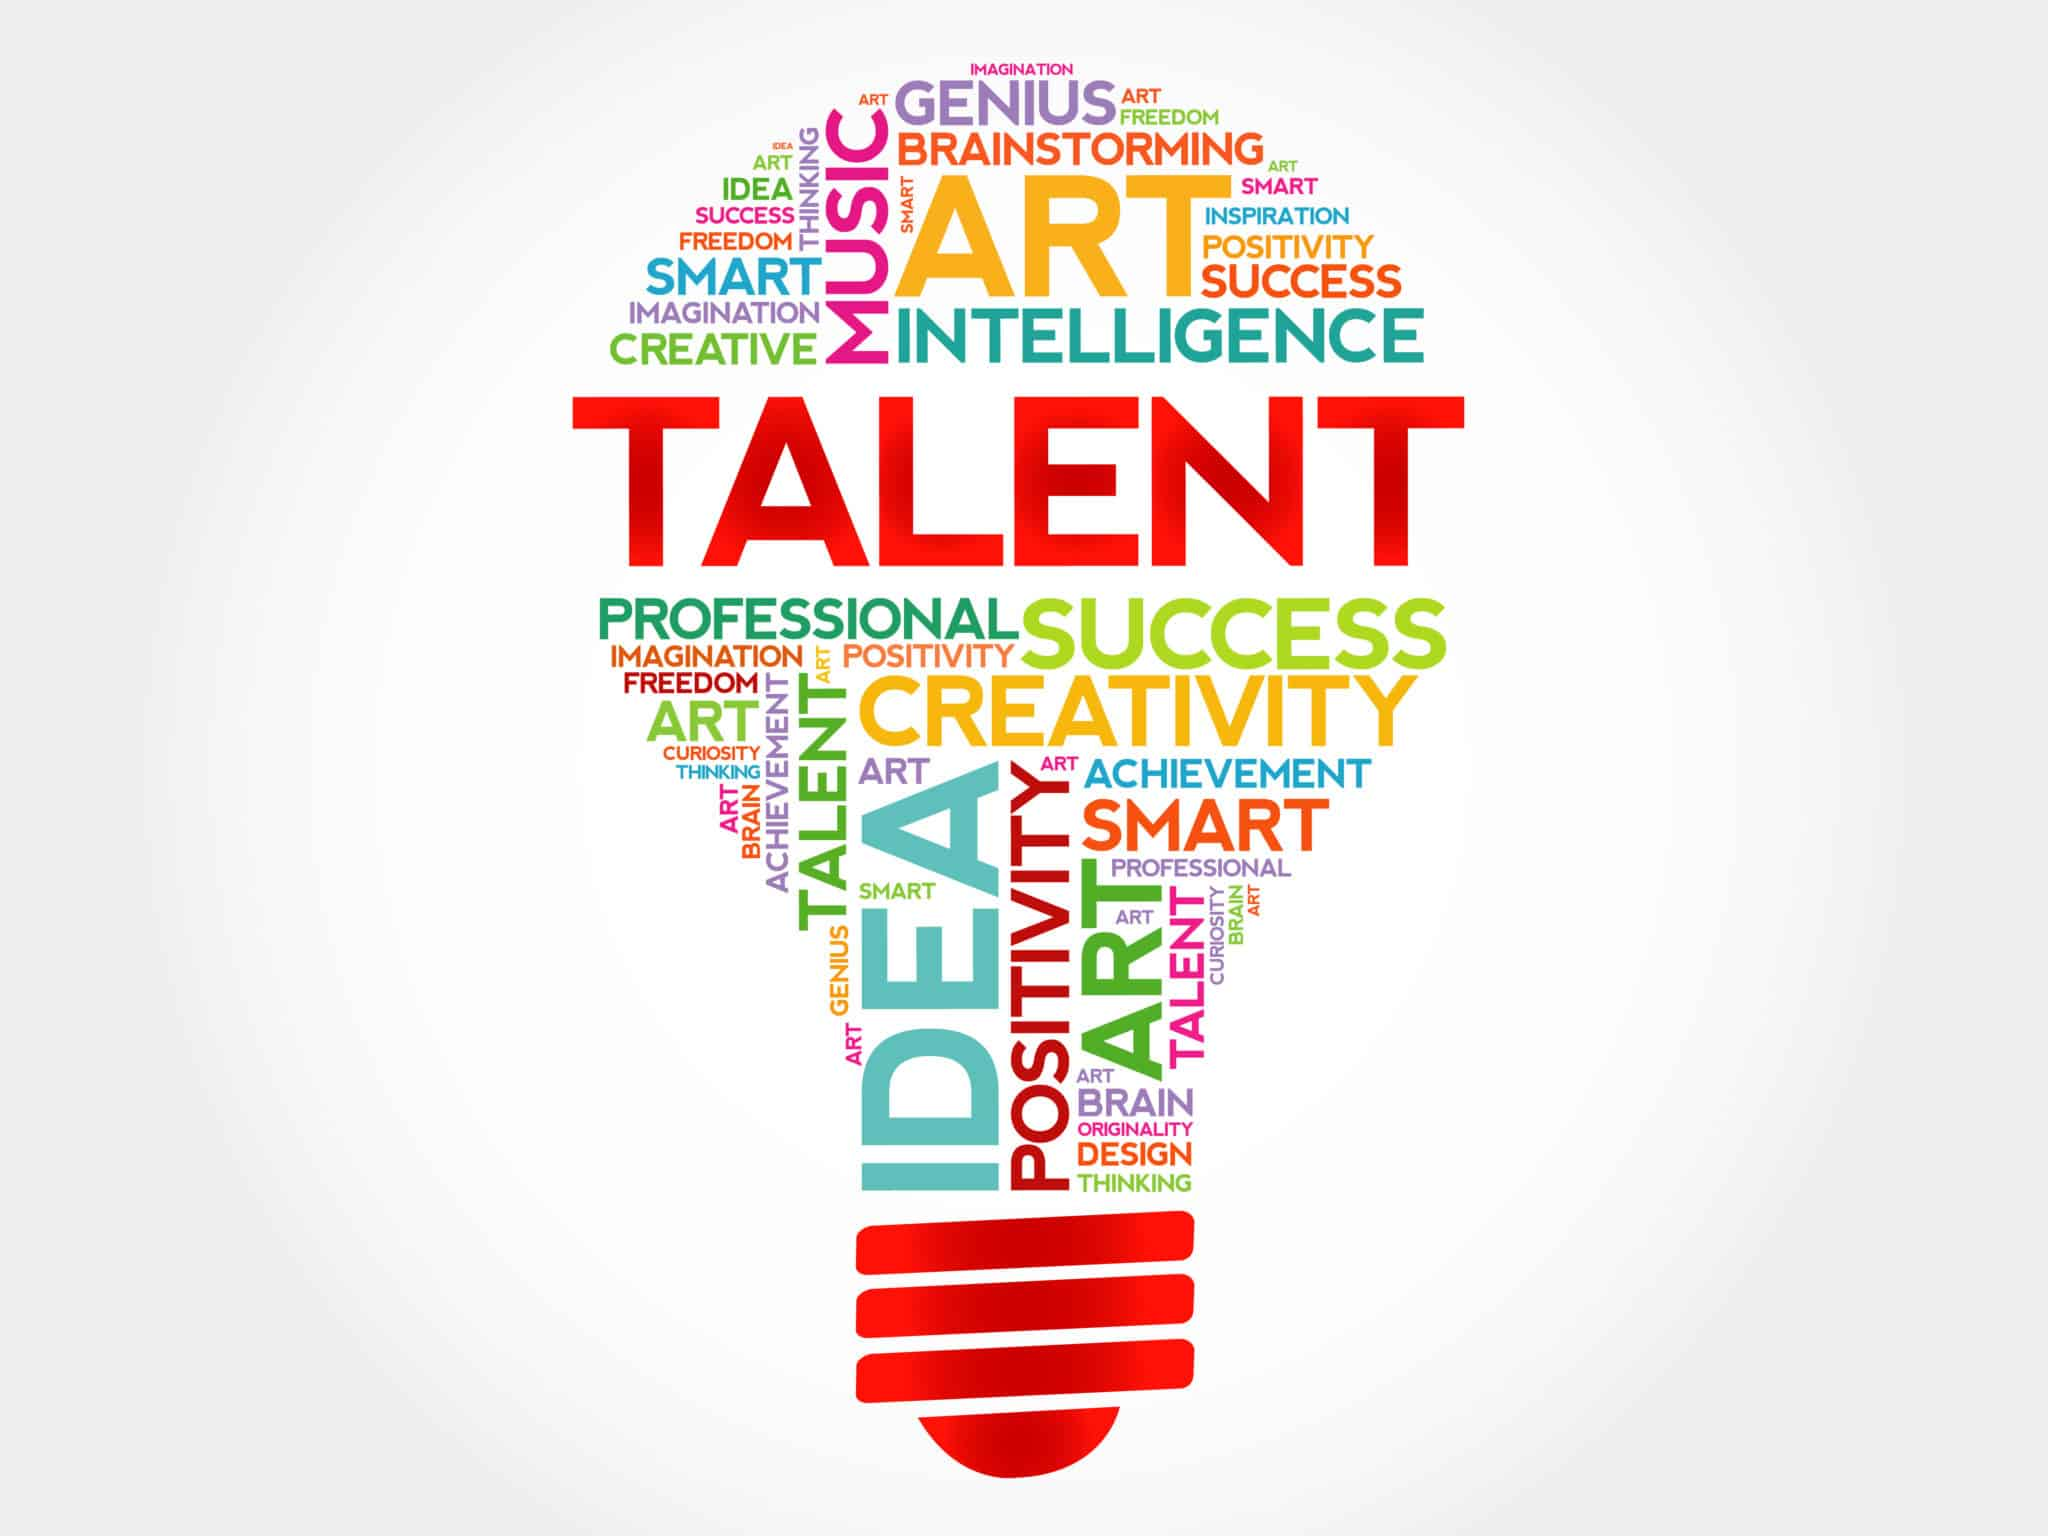 Talent management 2